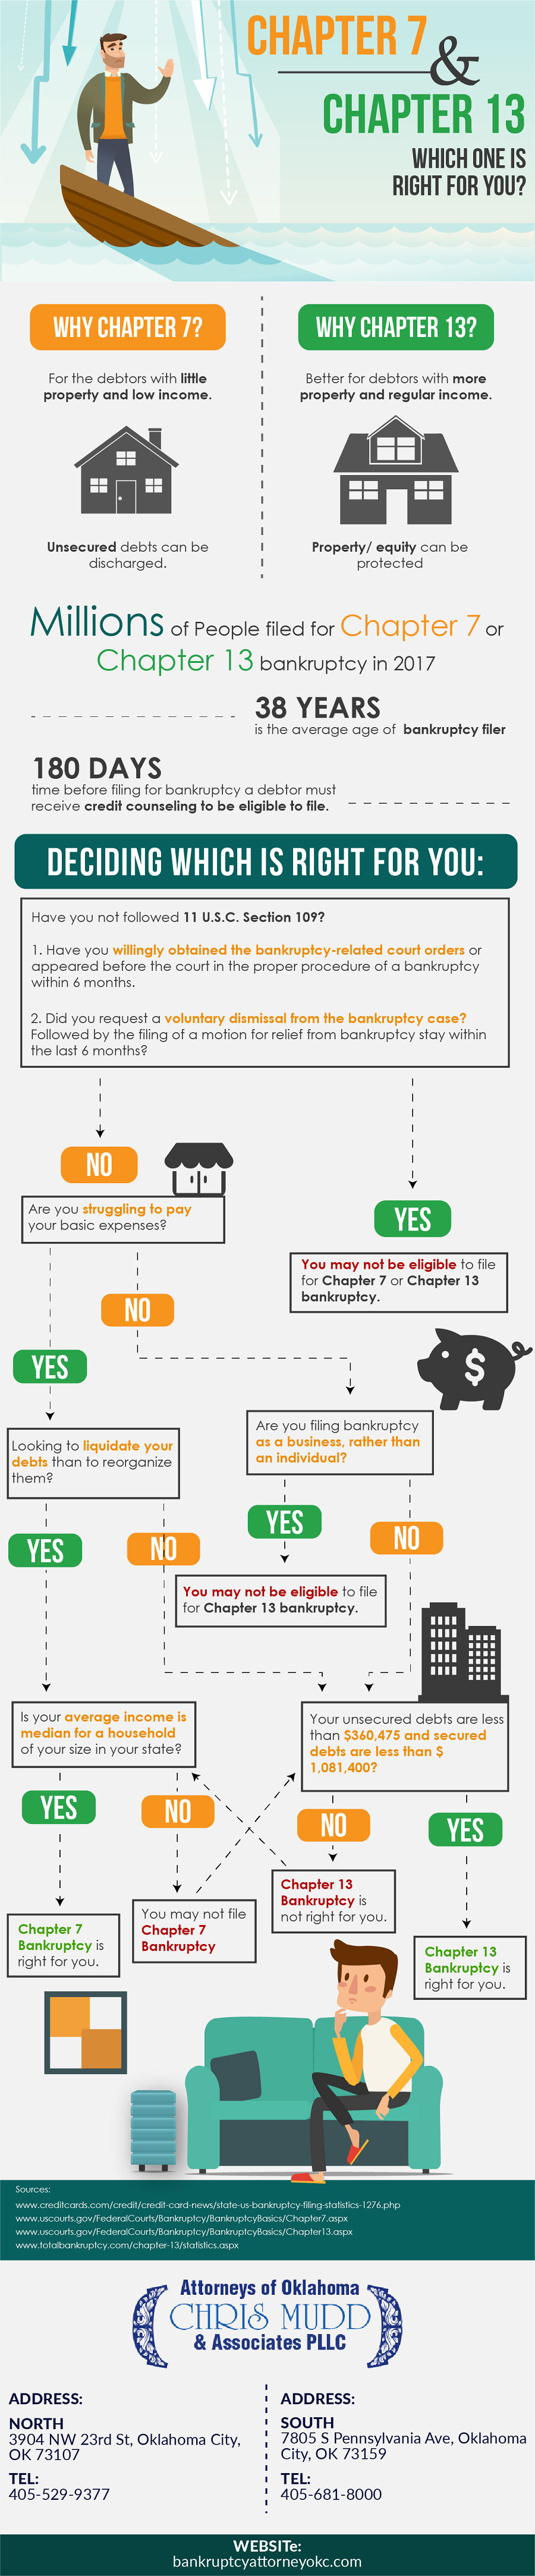 Chapter 7 Bankruptcy & Chapter 13 Bankruptcy